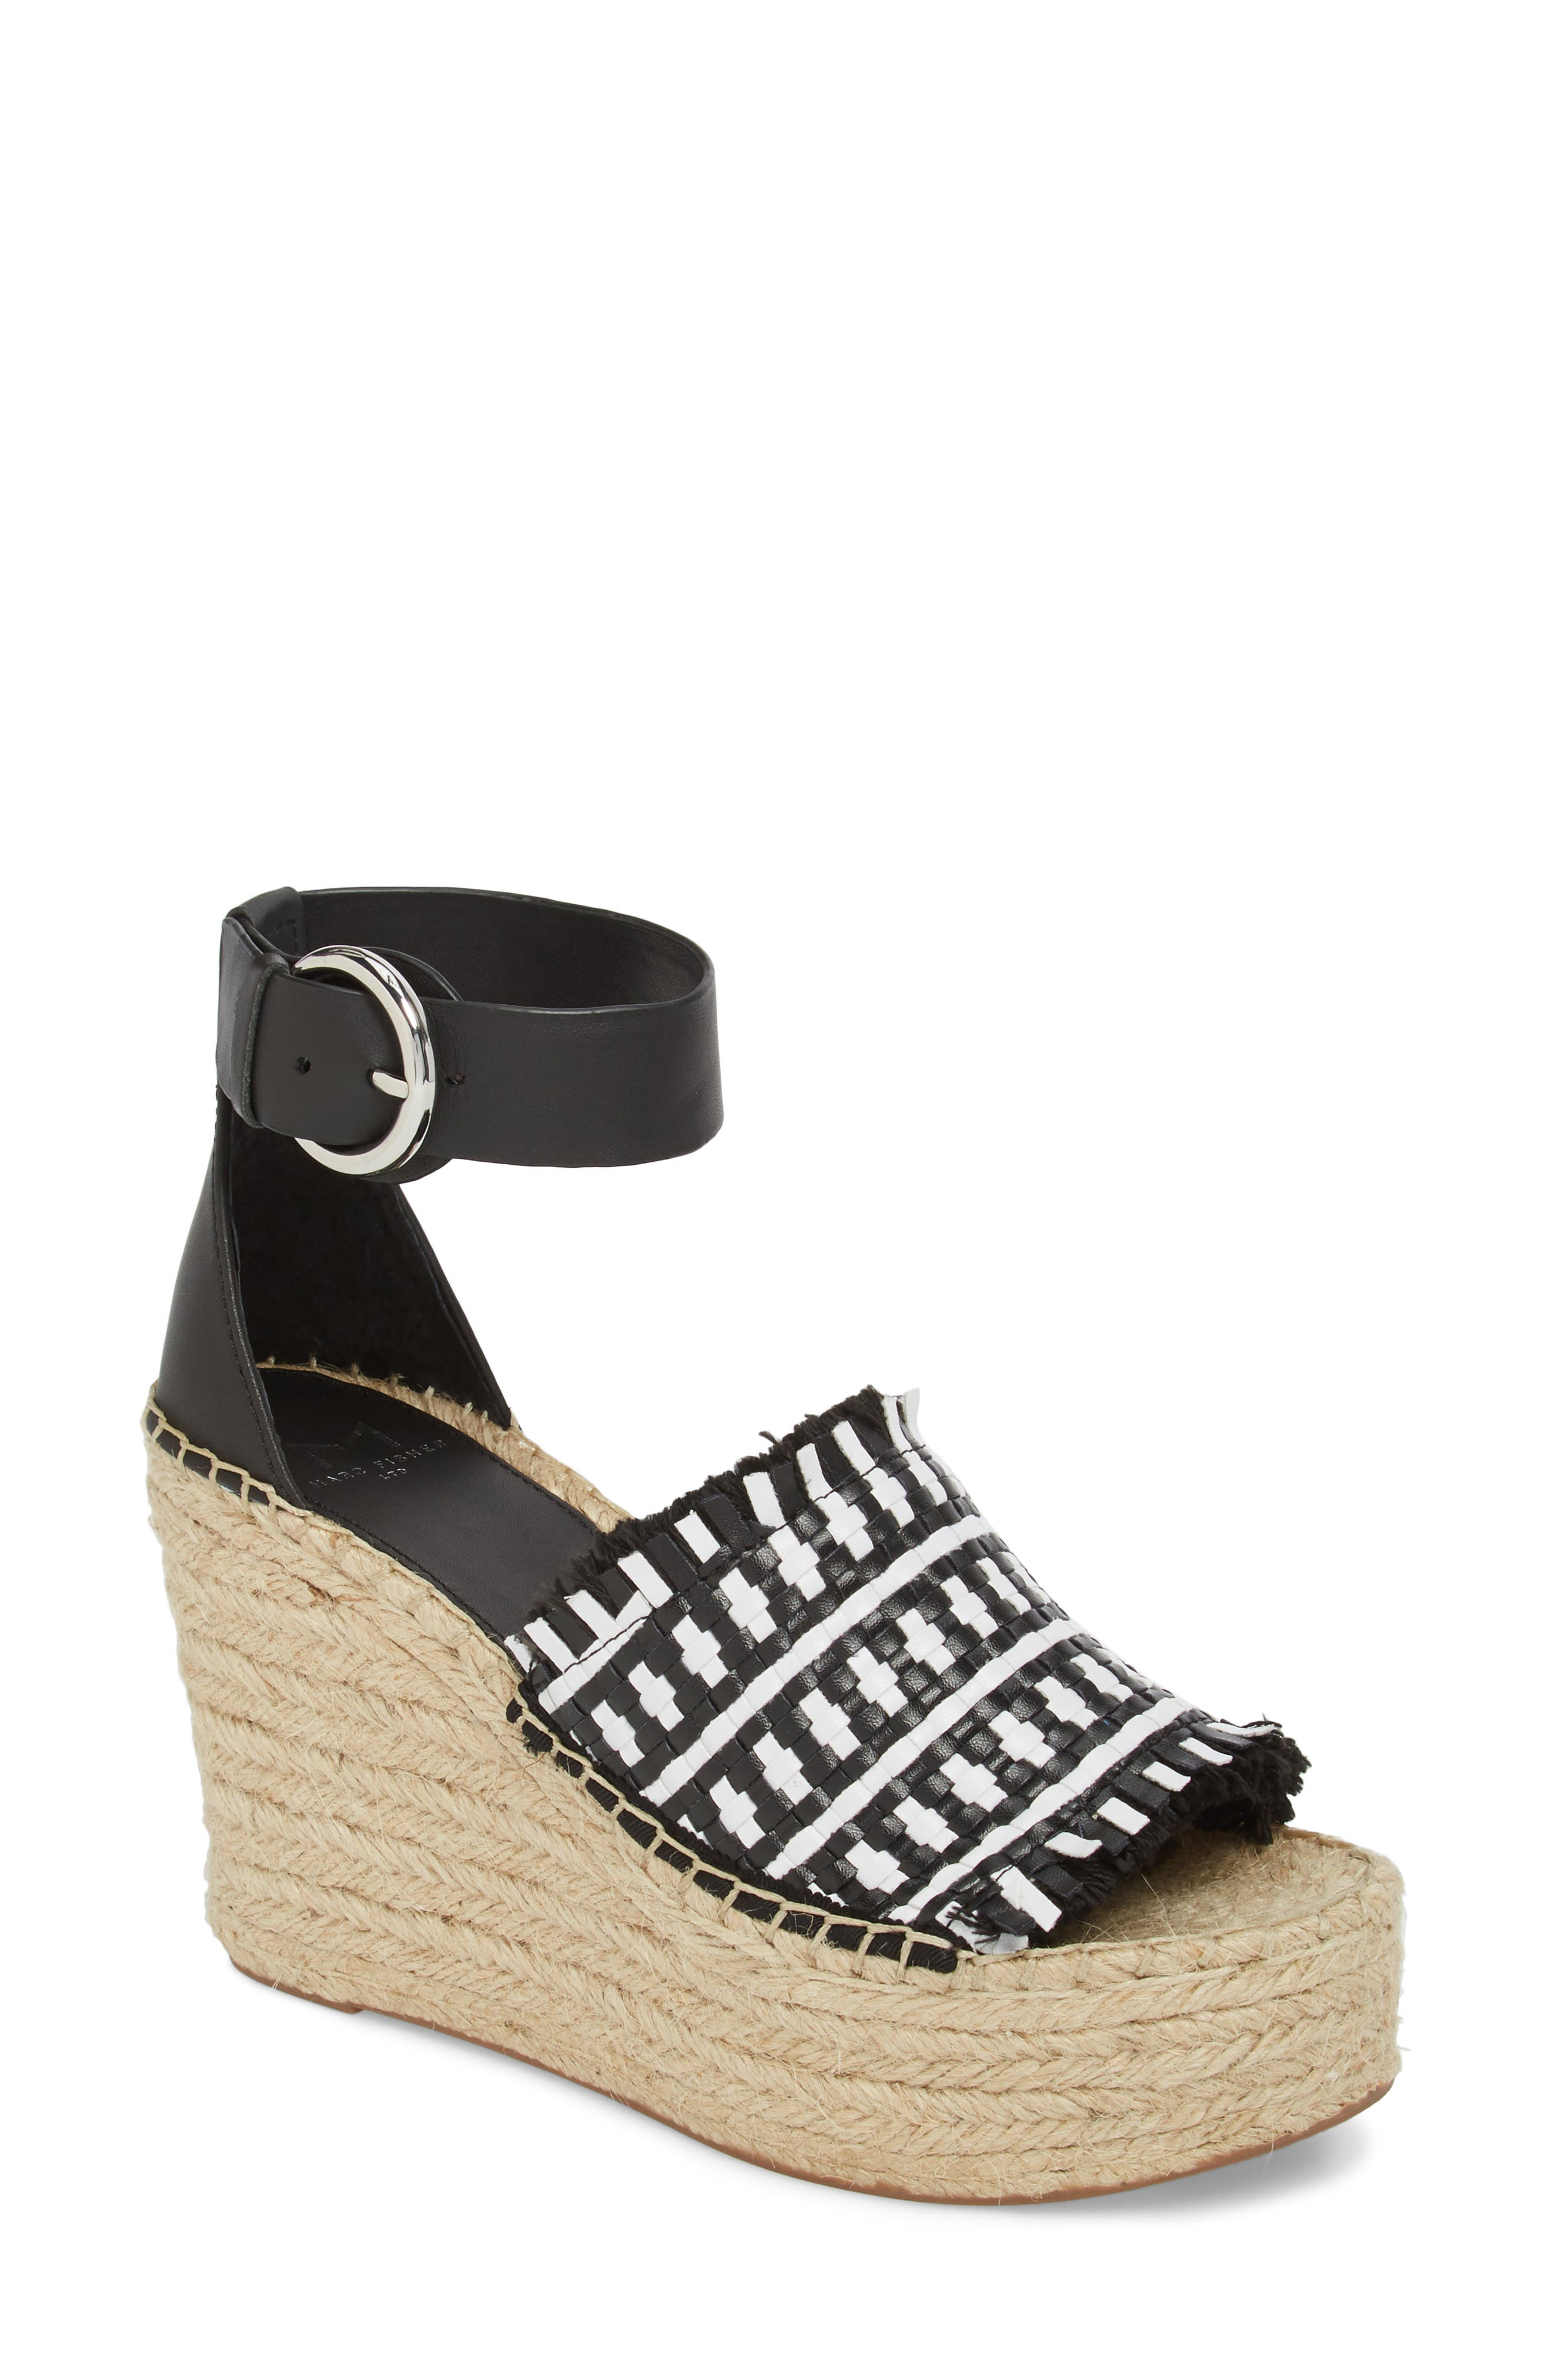 Andrew Espadrille Wedge Sandal,                             Main thumbnail 1, color,